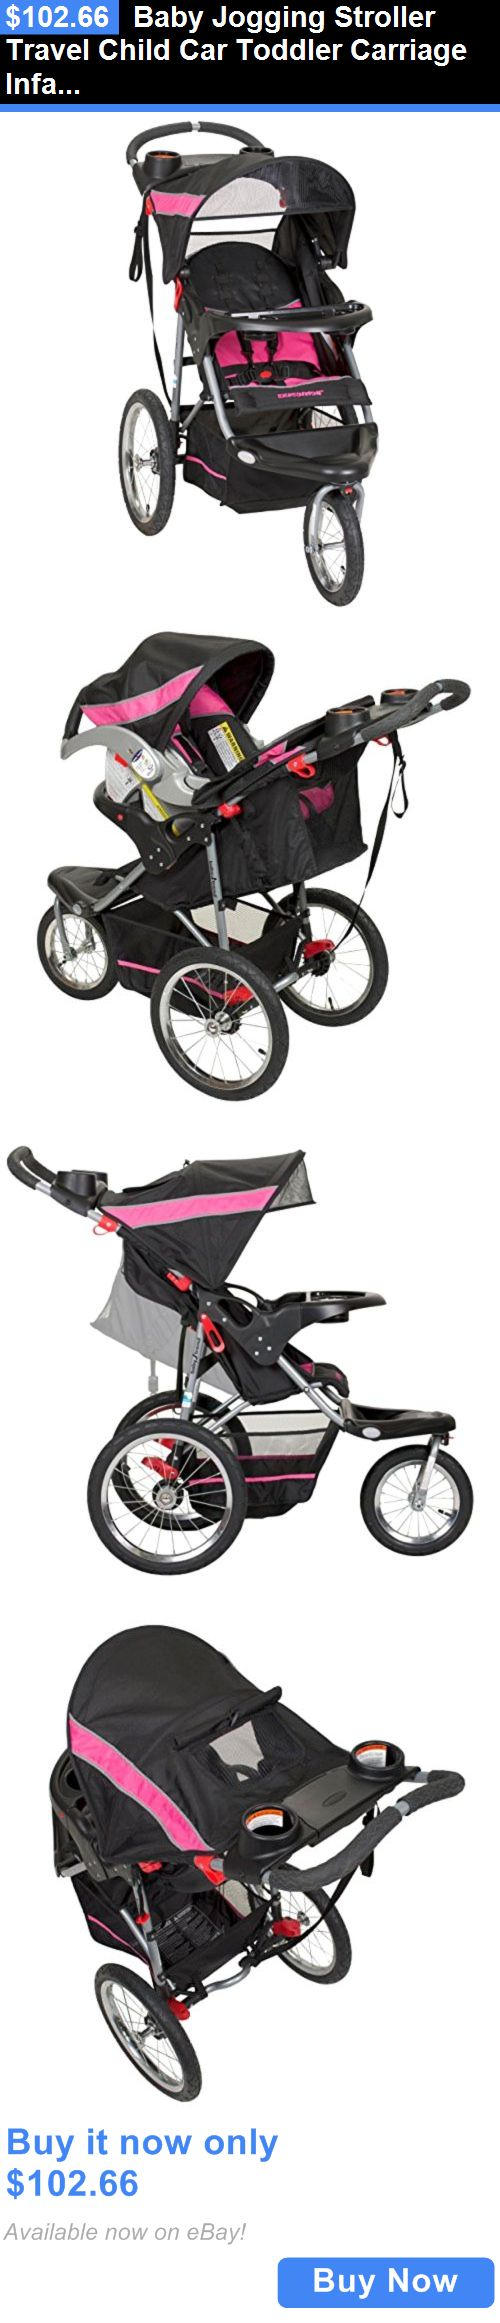 Baby: Baby Jogging Stroller Travel Child Car Toddler Carriage Infant Seat Folding Pram BUY IT NOW ONLY: $102.66